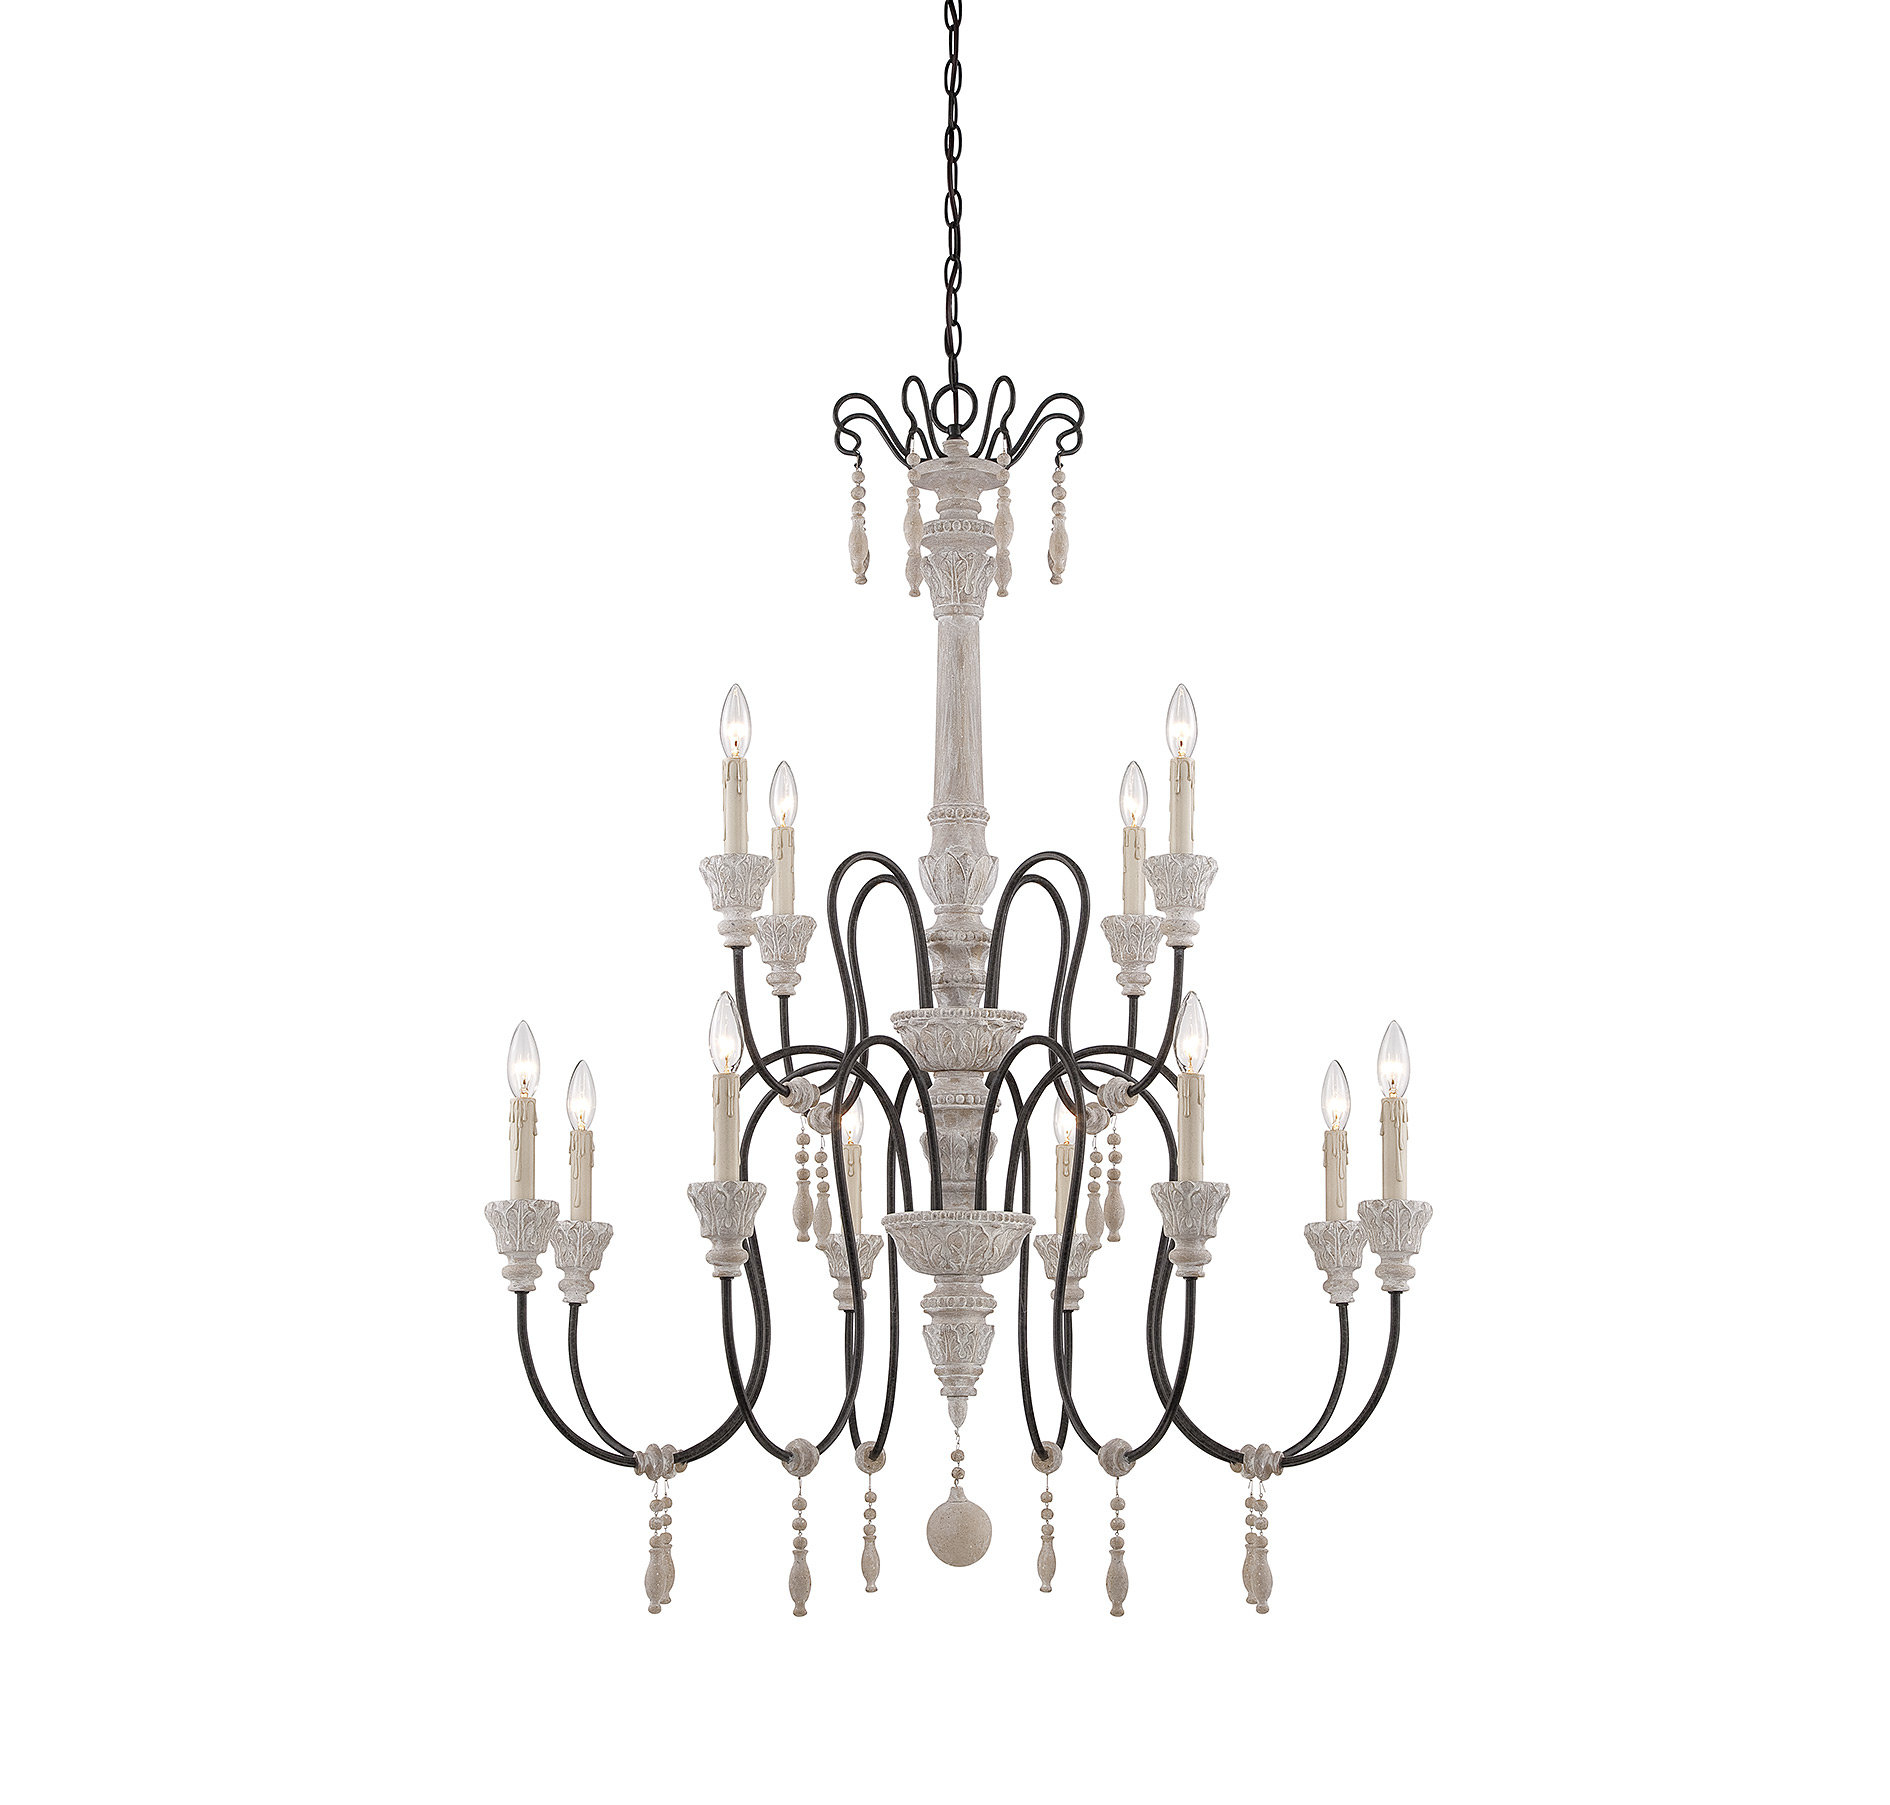 Corneau 12-Light Chandelier & Reviews | Joss & Main intended for Corneau 5-Light Chandeliers (Image 12 of 30)